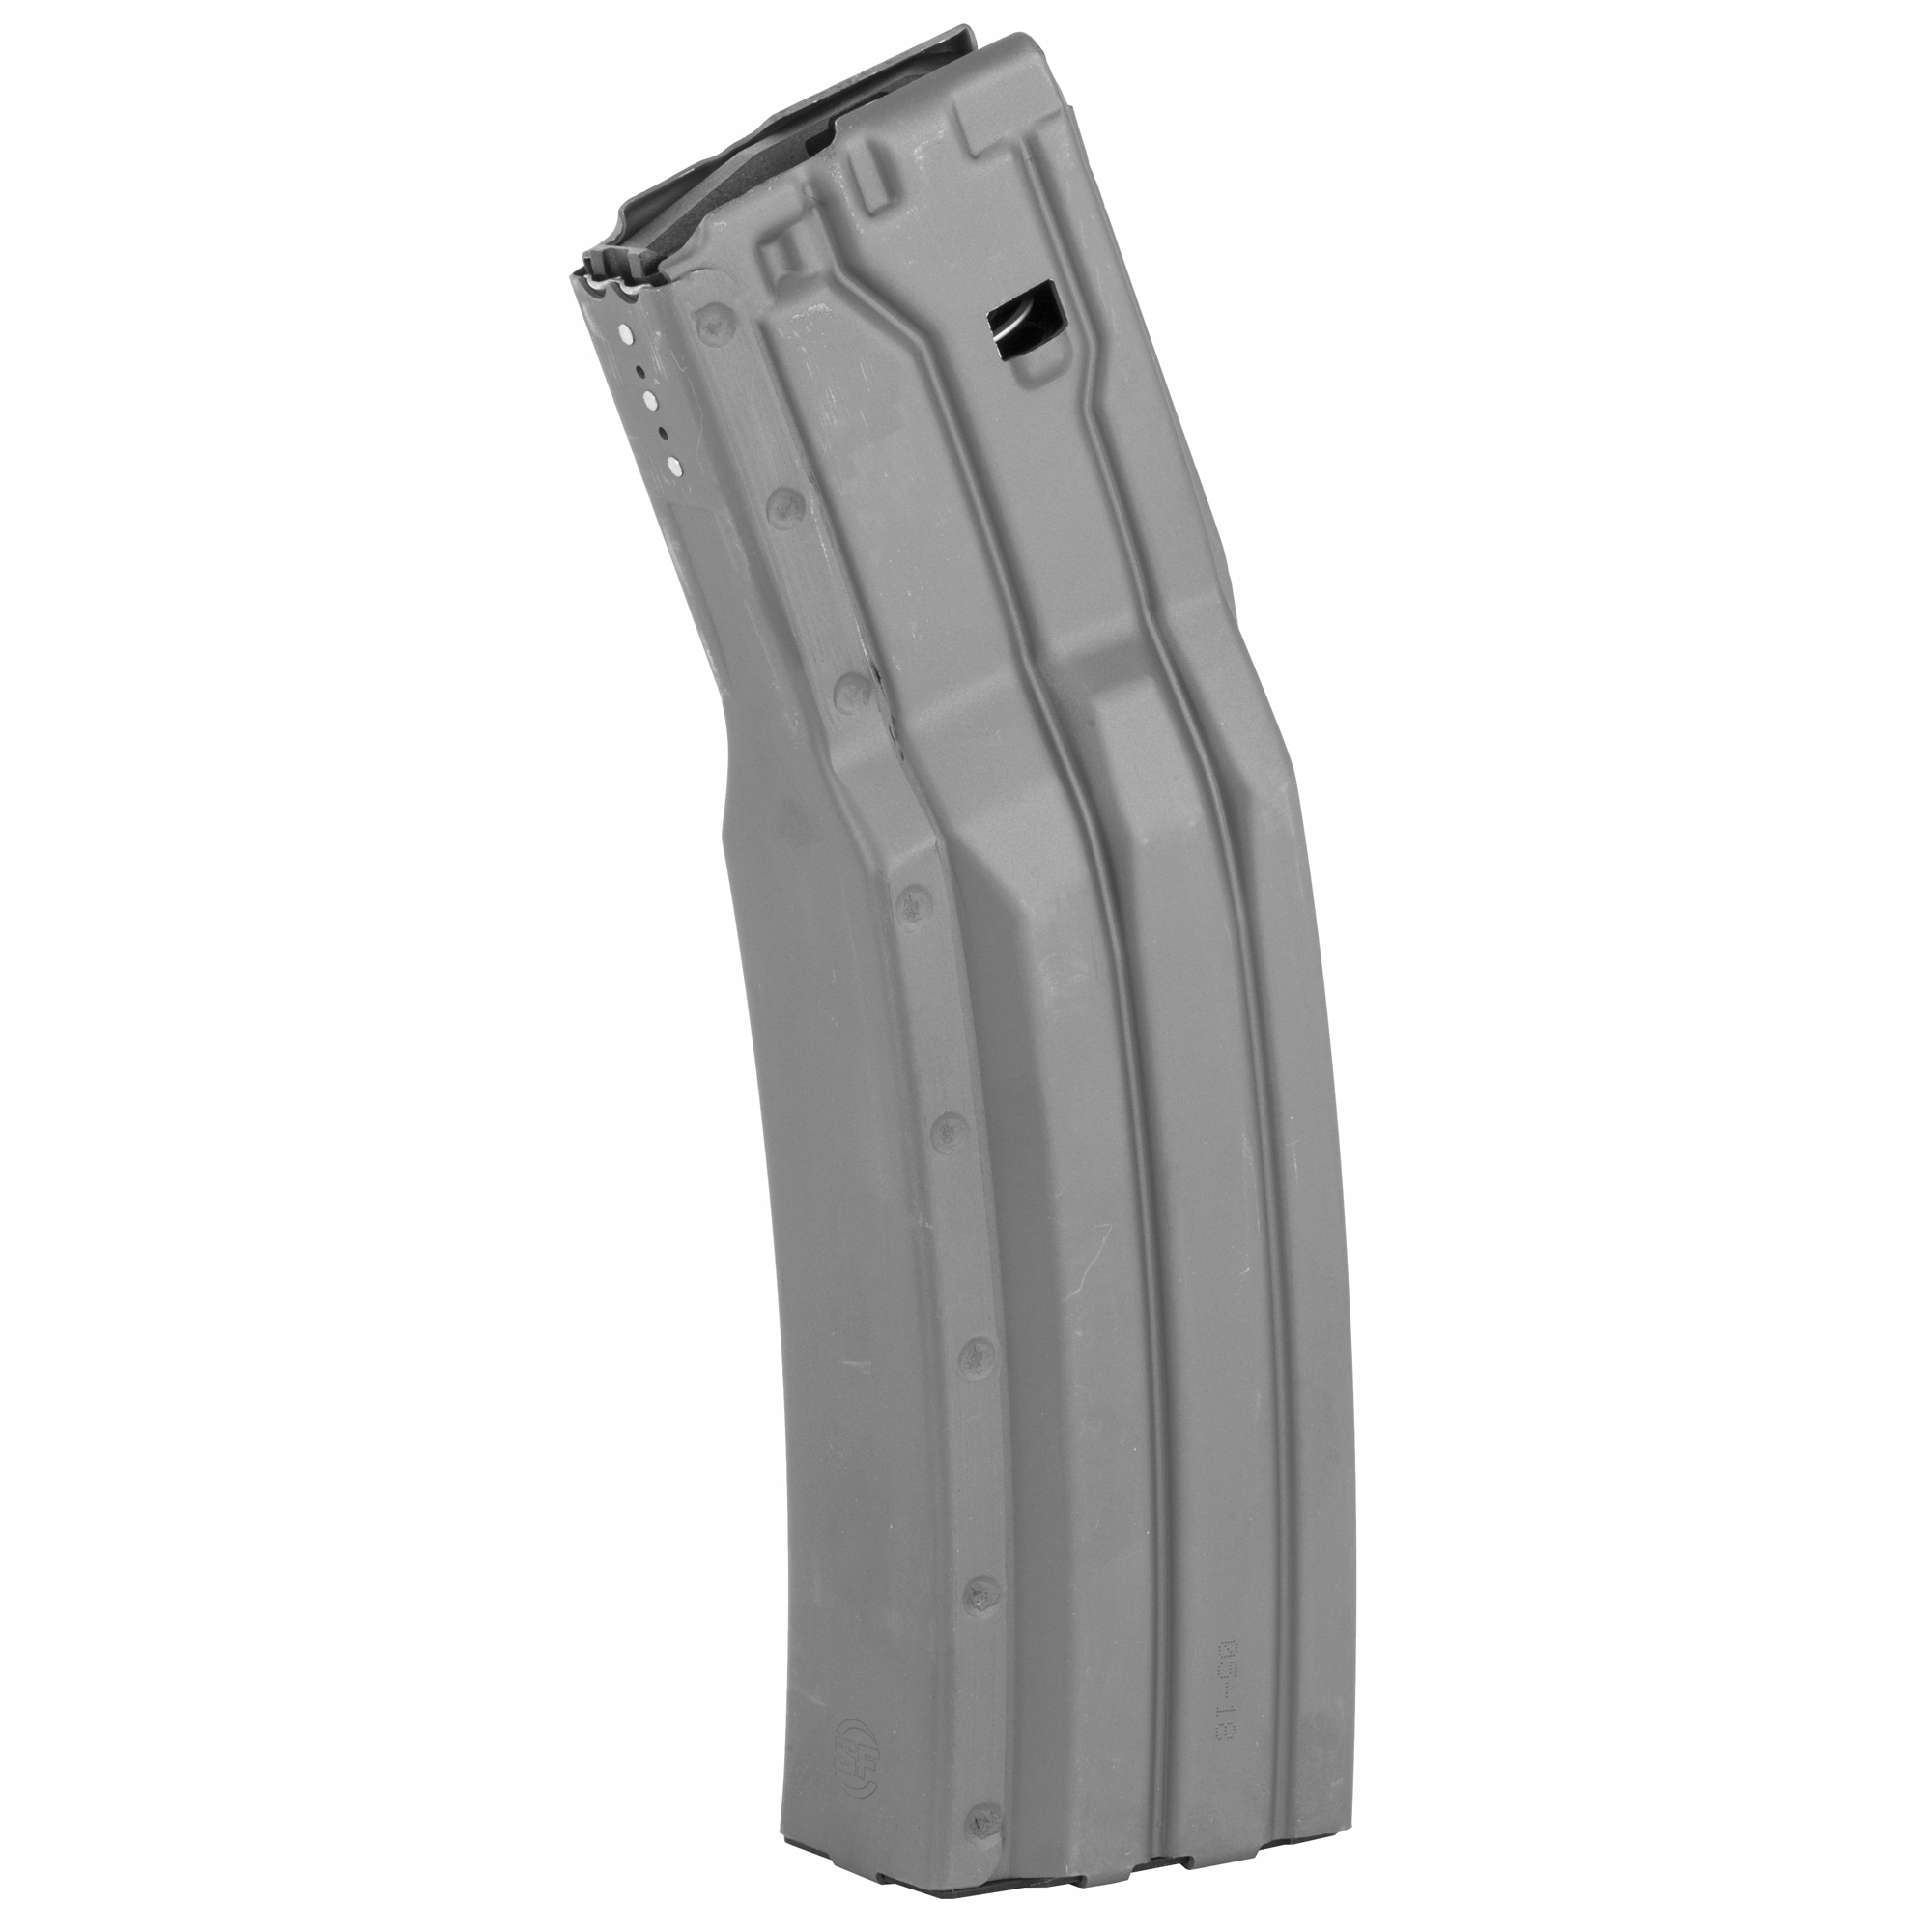 """SureFire High-Capacity Magazines are compatible with M4/M16/AR-15 variants and other firearms that accept STANAG 4179 magazines. These 60 round magazines feed smoothly and reliably due to optimal geometry"""" non-binding coil springs"""" and nesting polymer followers."""